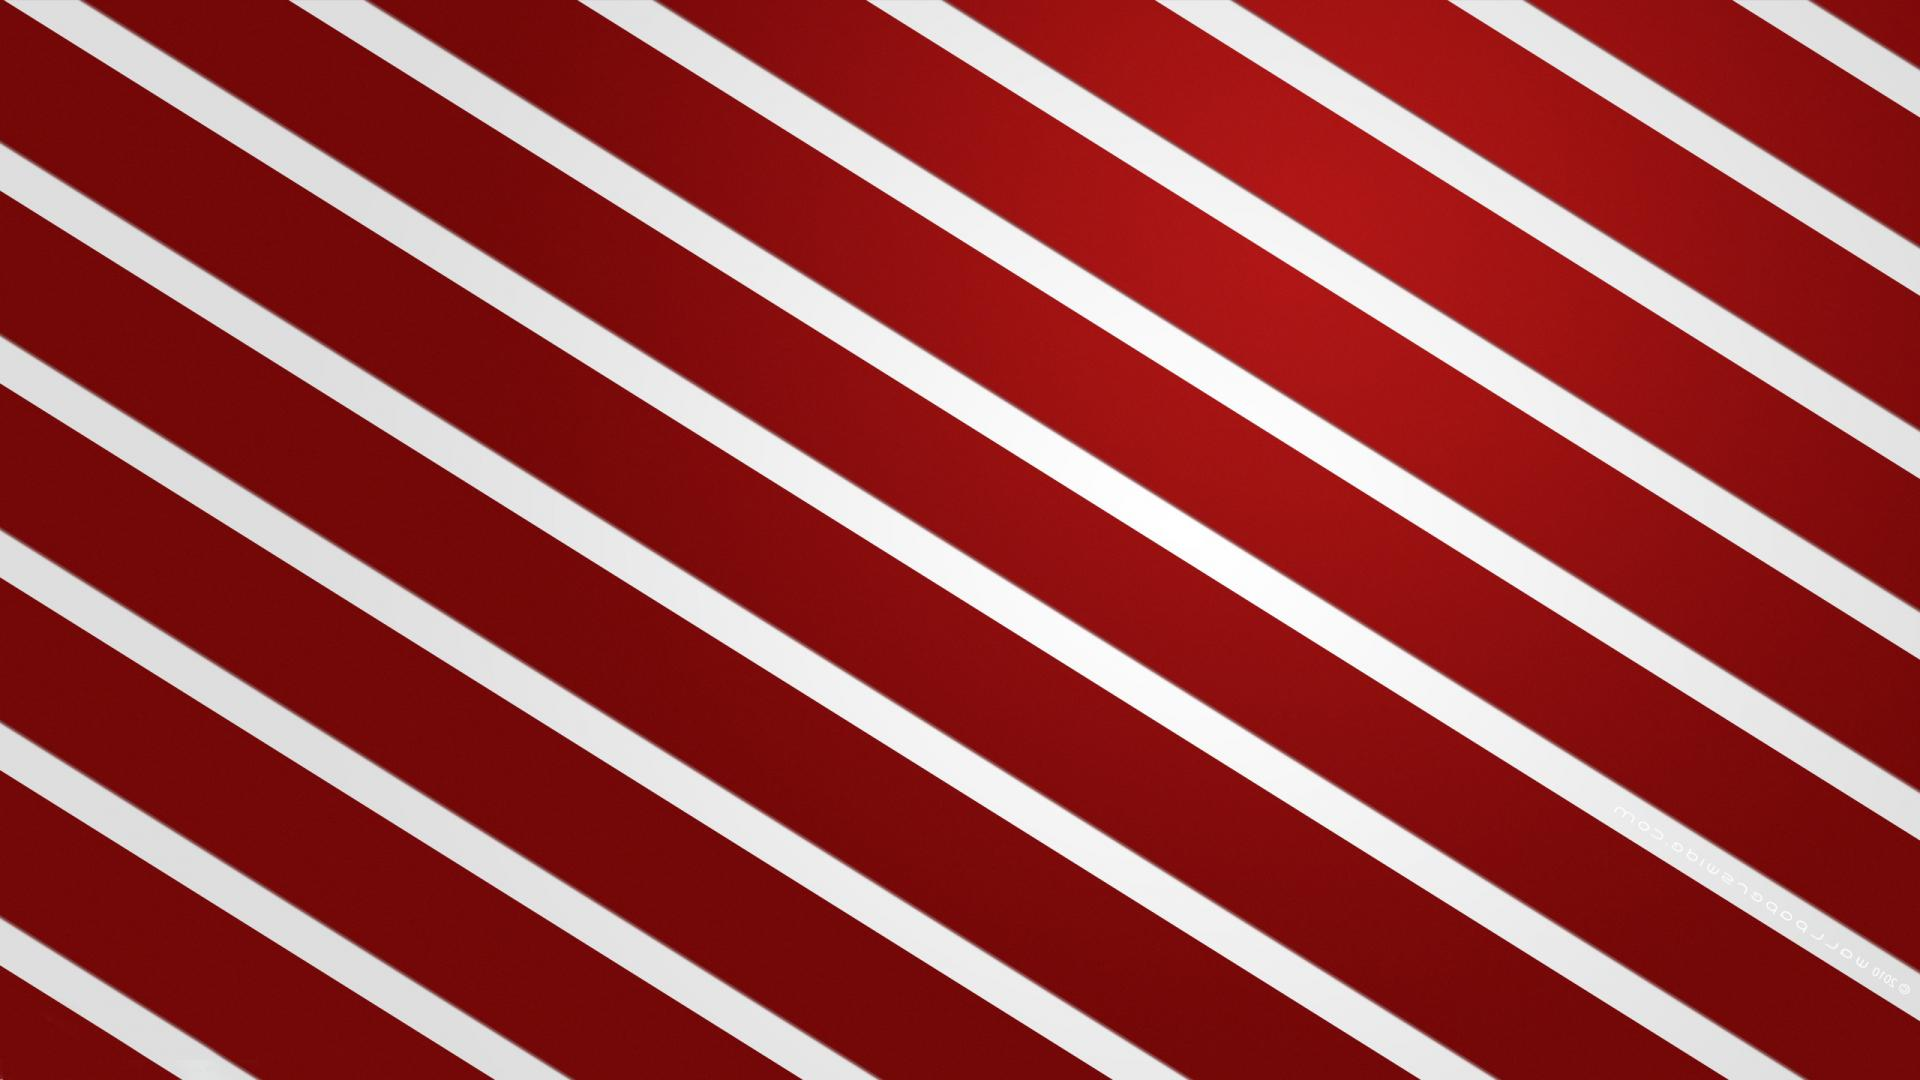 Red And White Wallpaper download red and white stripes wallpaper gallery